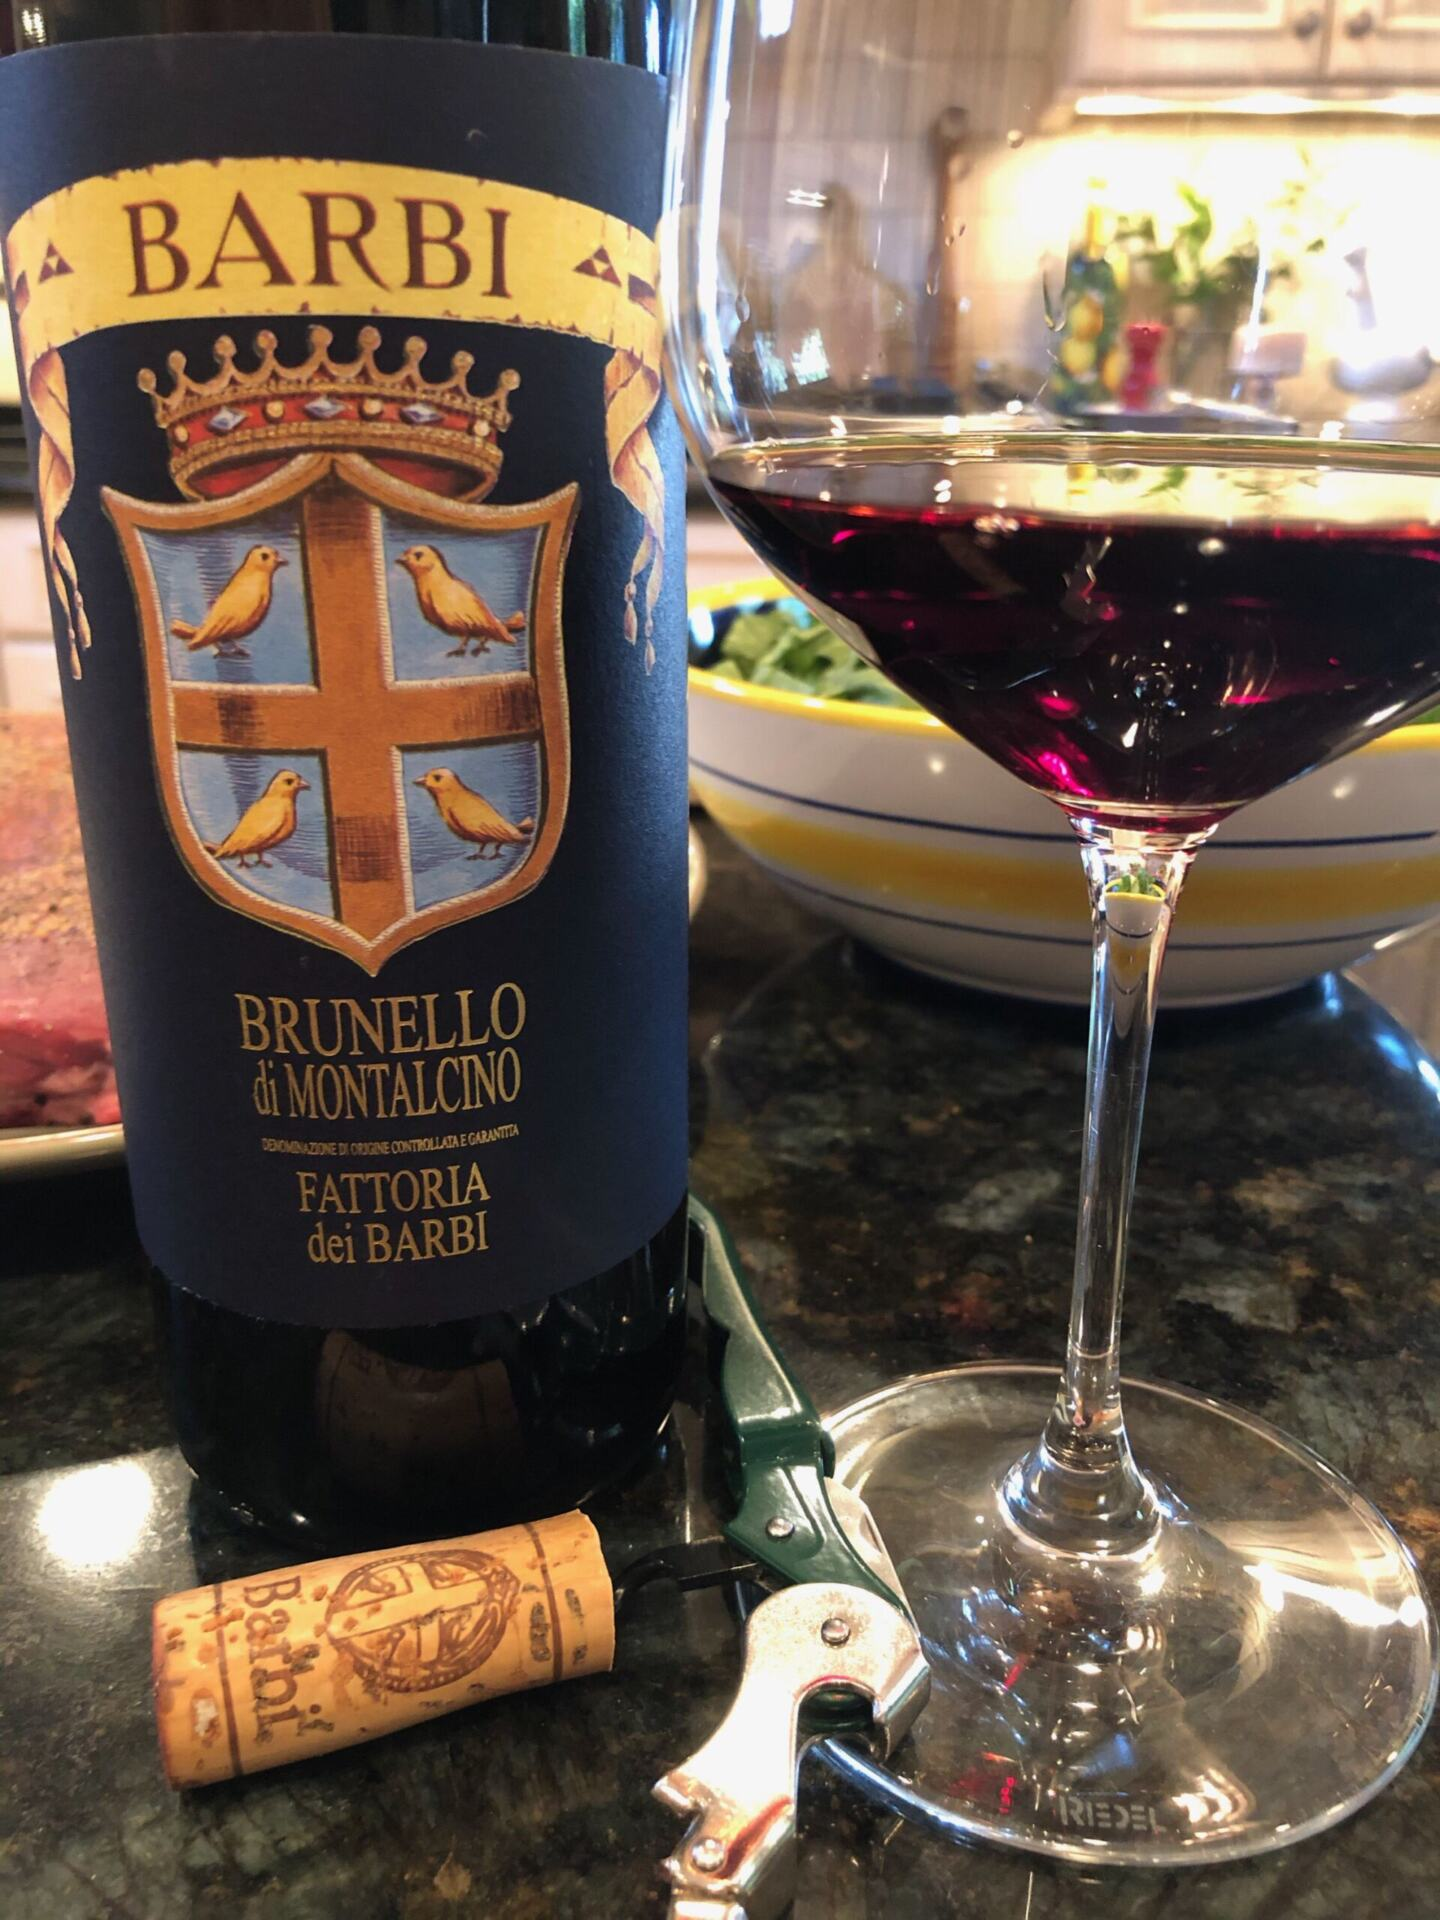 Barbi Brunello in glass and bottle